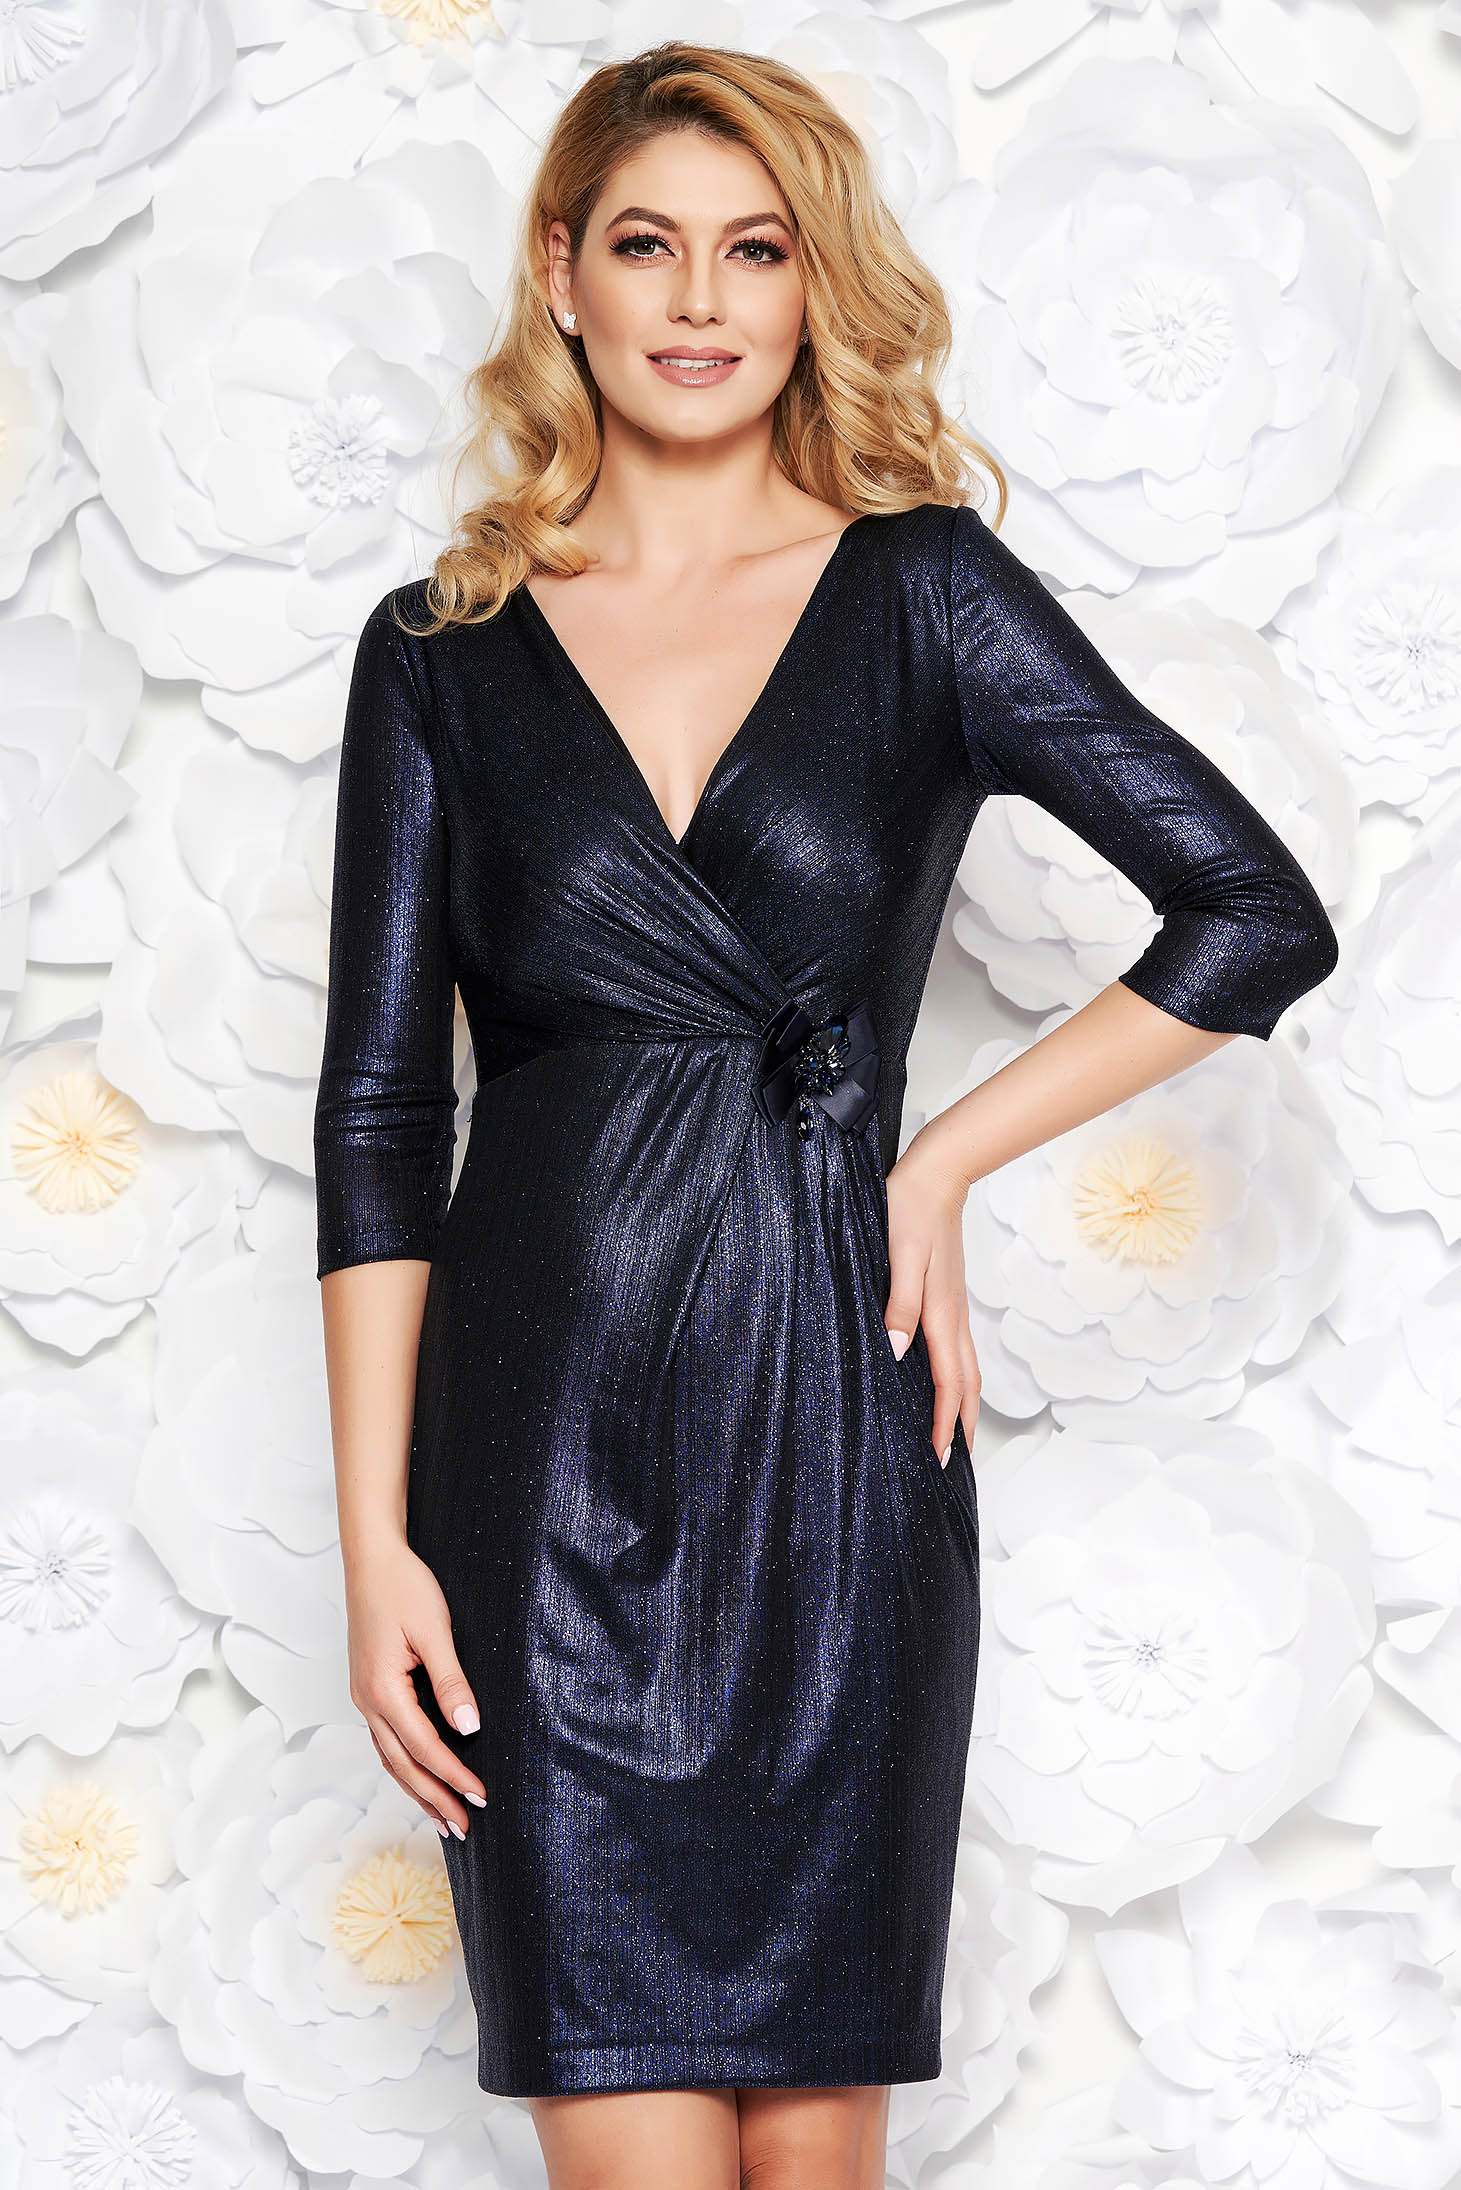 Darkblue occasional midi dress from shiny fabric with inside lining accessorized with breastpin